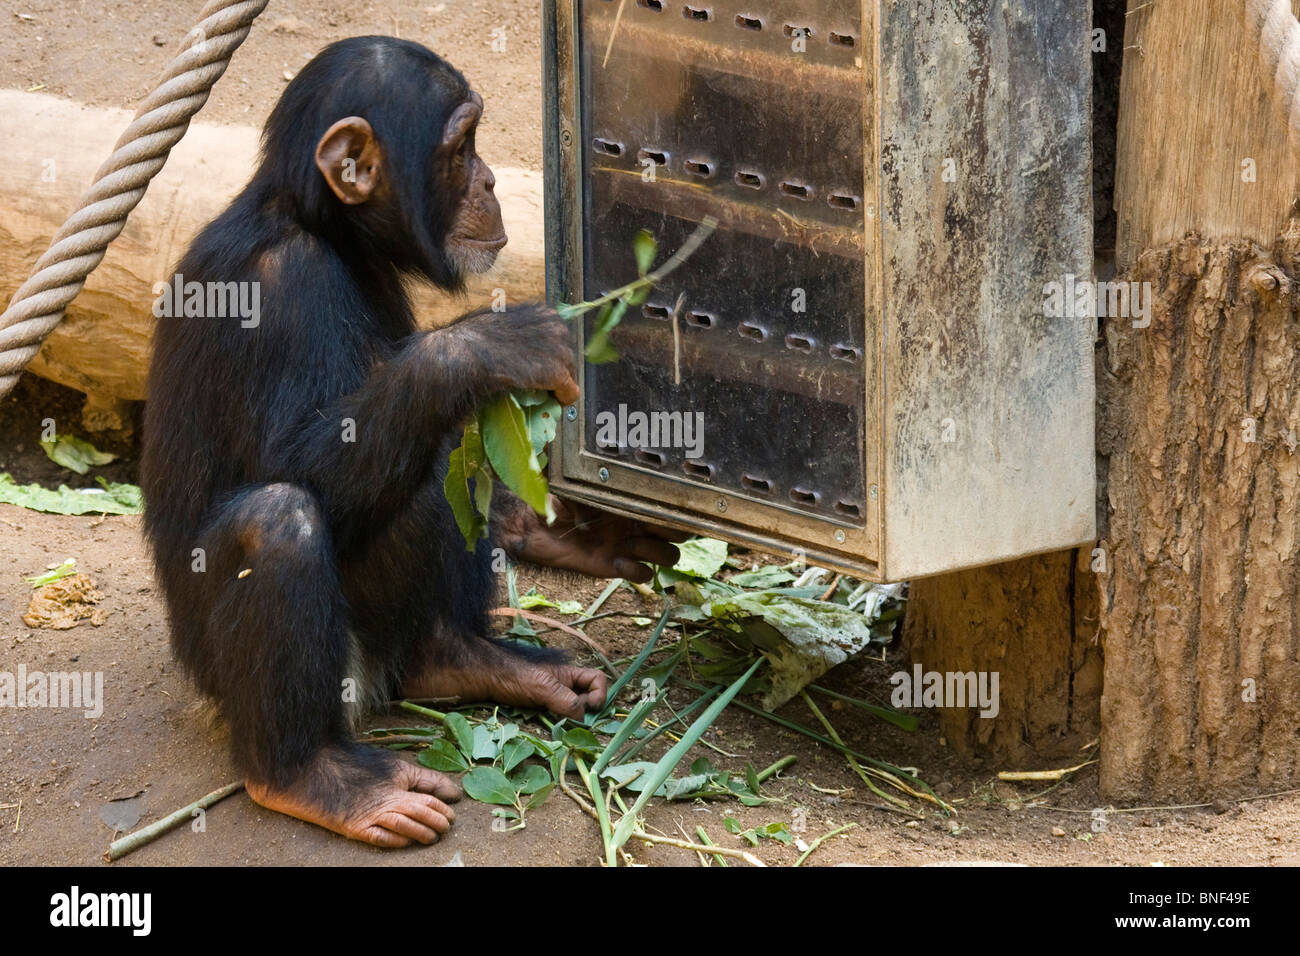 Western common chimpanzee (Pan troglodytes verus), infant poking with a branch in a food box, behavioral enrichment, - Stock Image